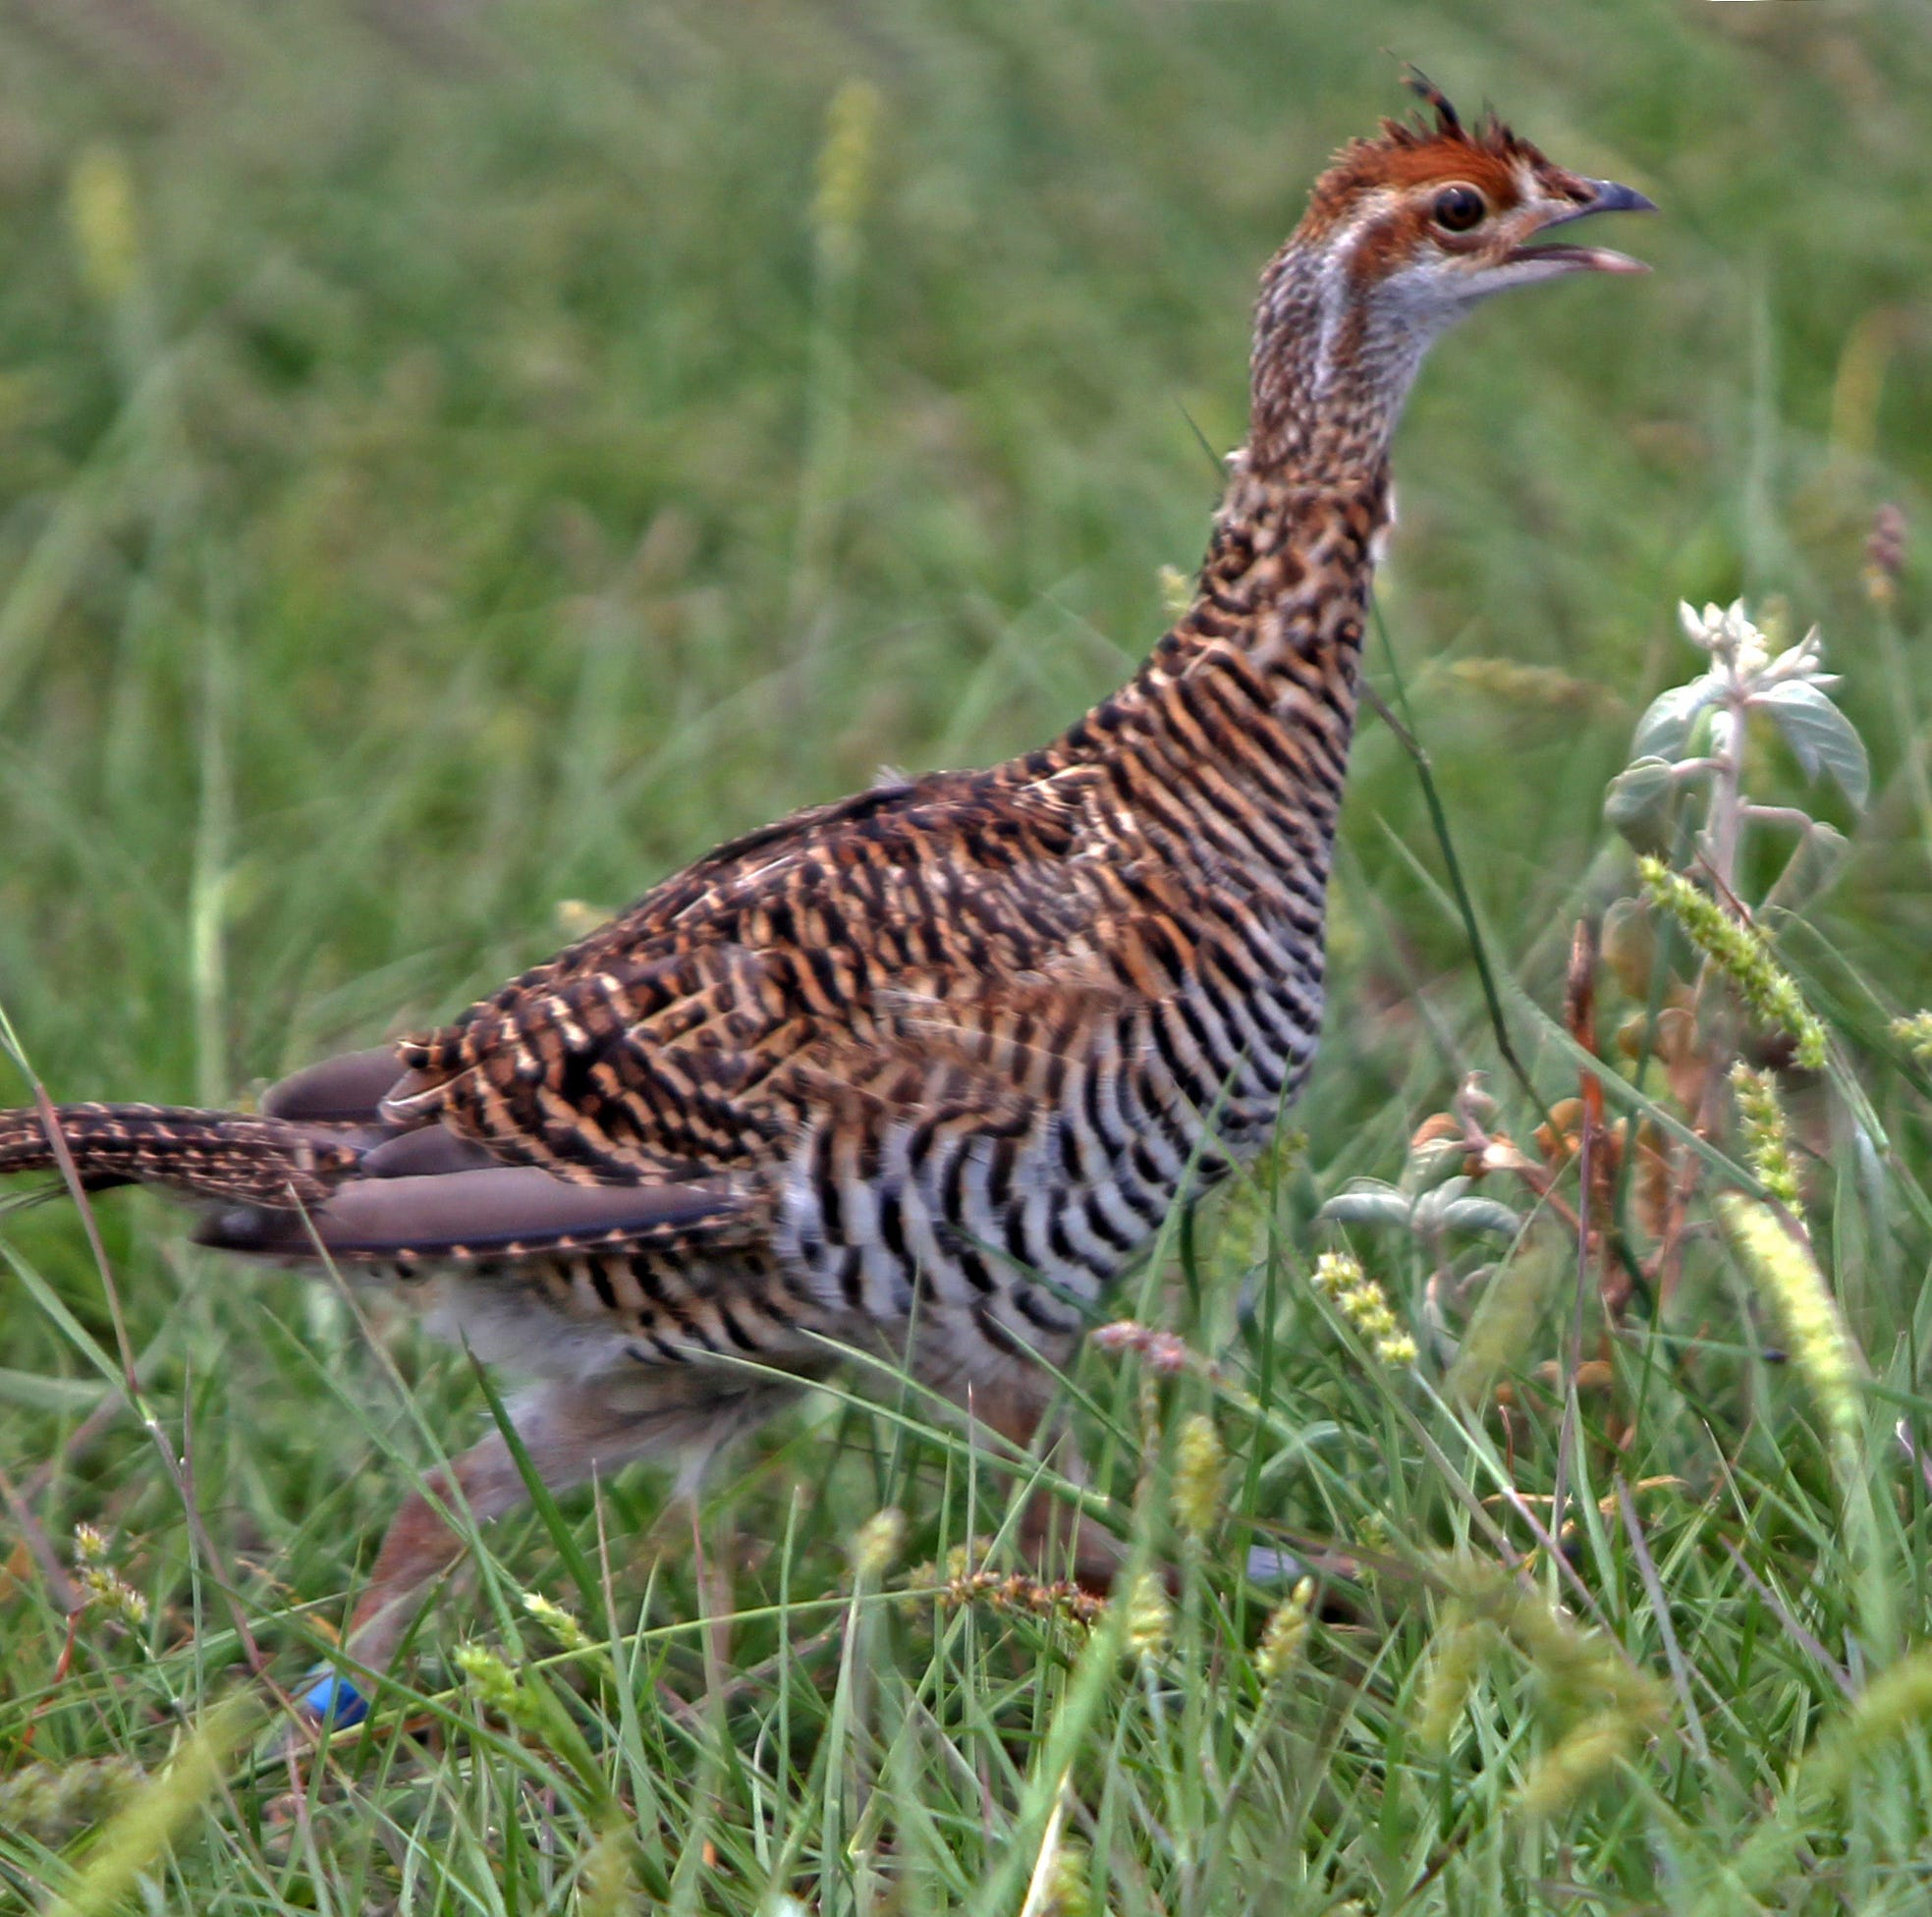 This endangered bird species in Texas has a must-see courting ritual